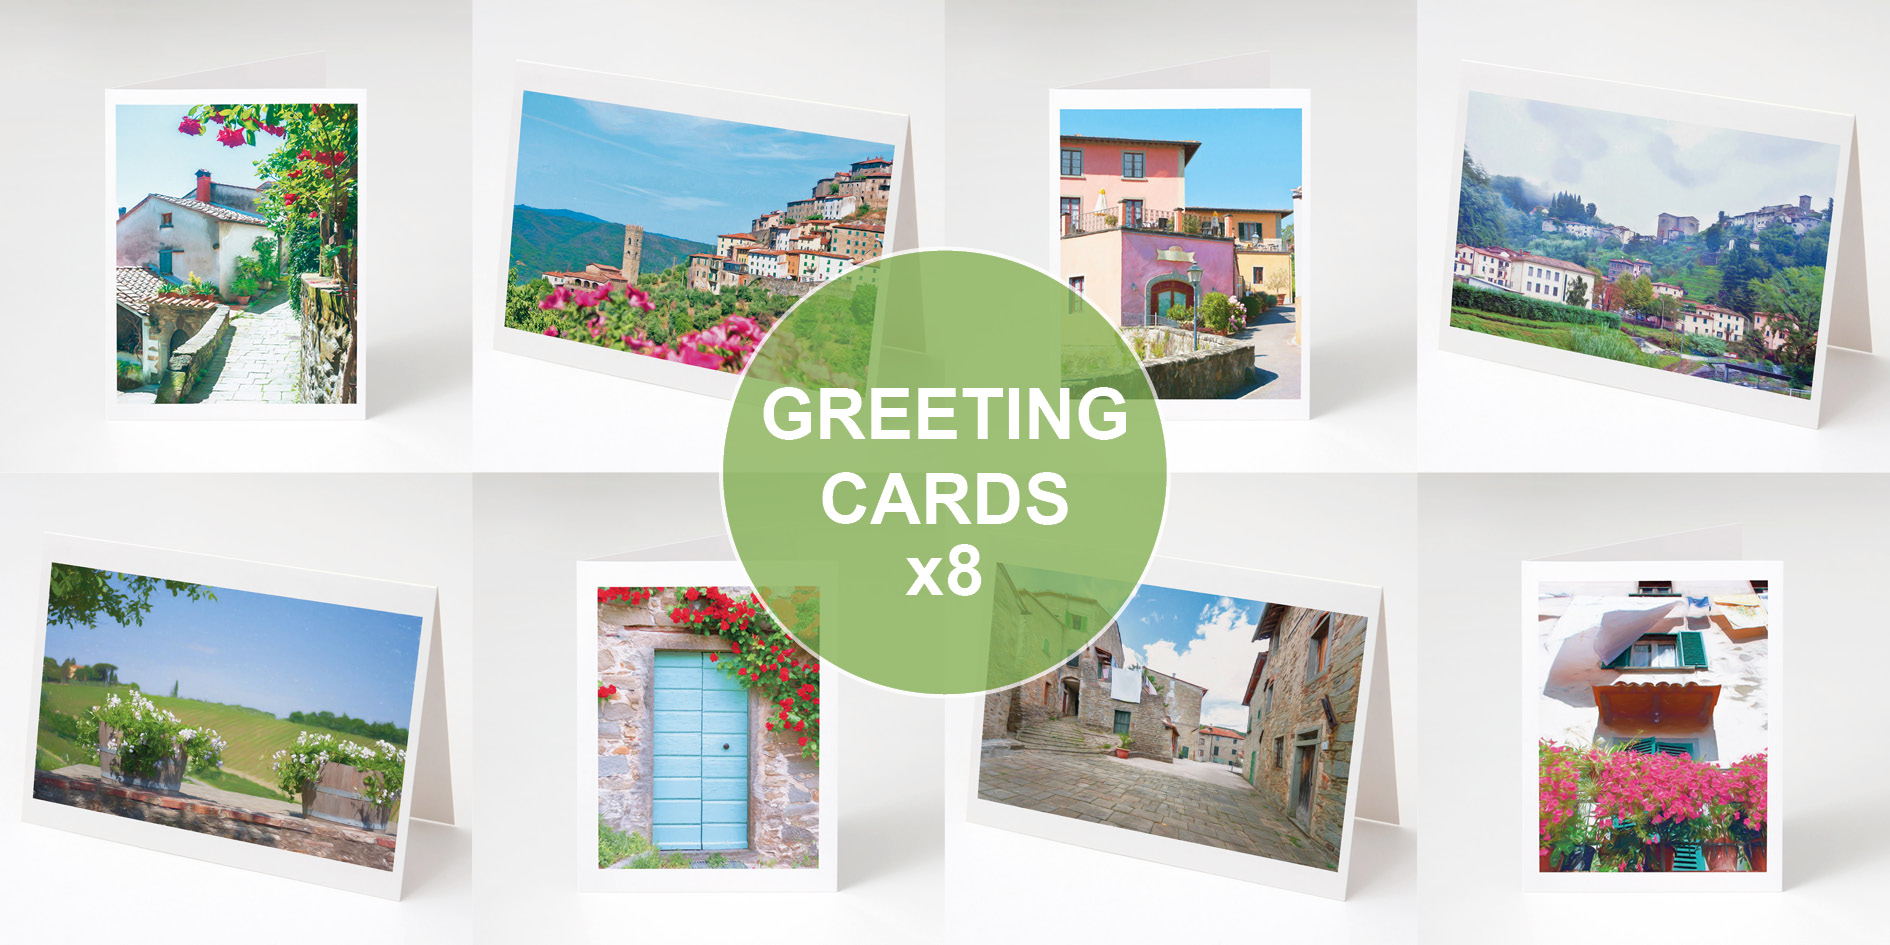 Pack of Cards 8 Greeting Cards, Tusccany, Italy